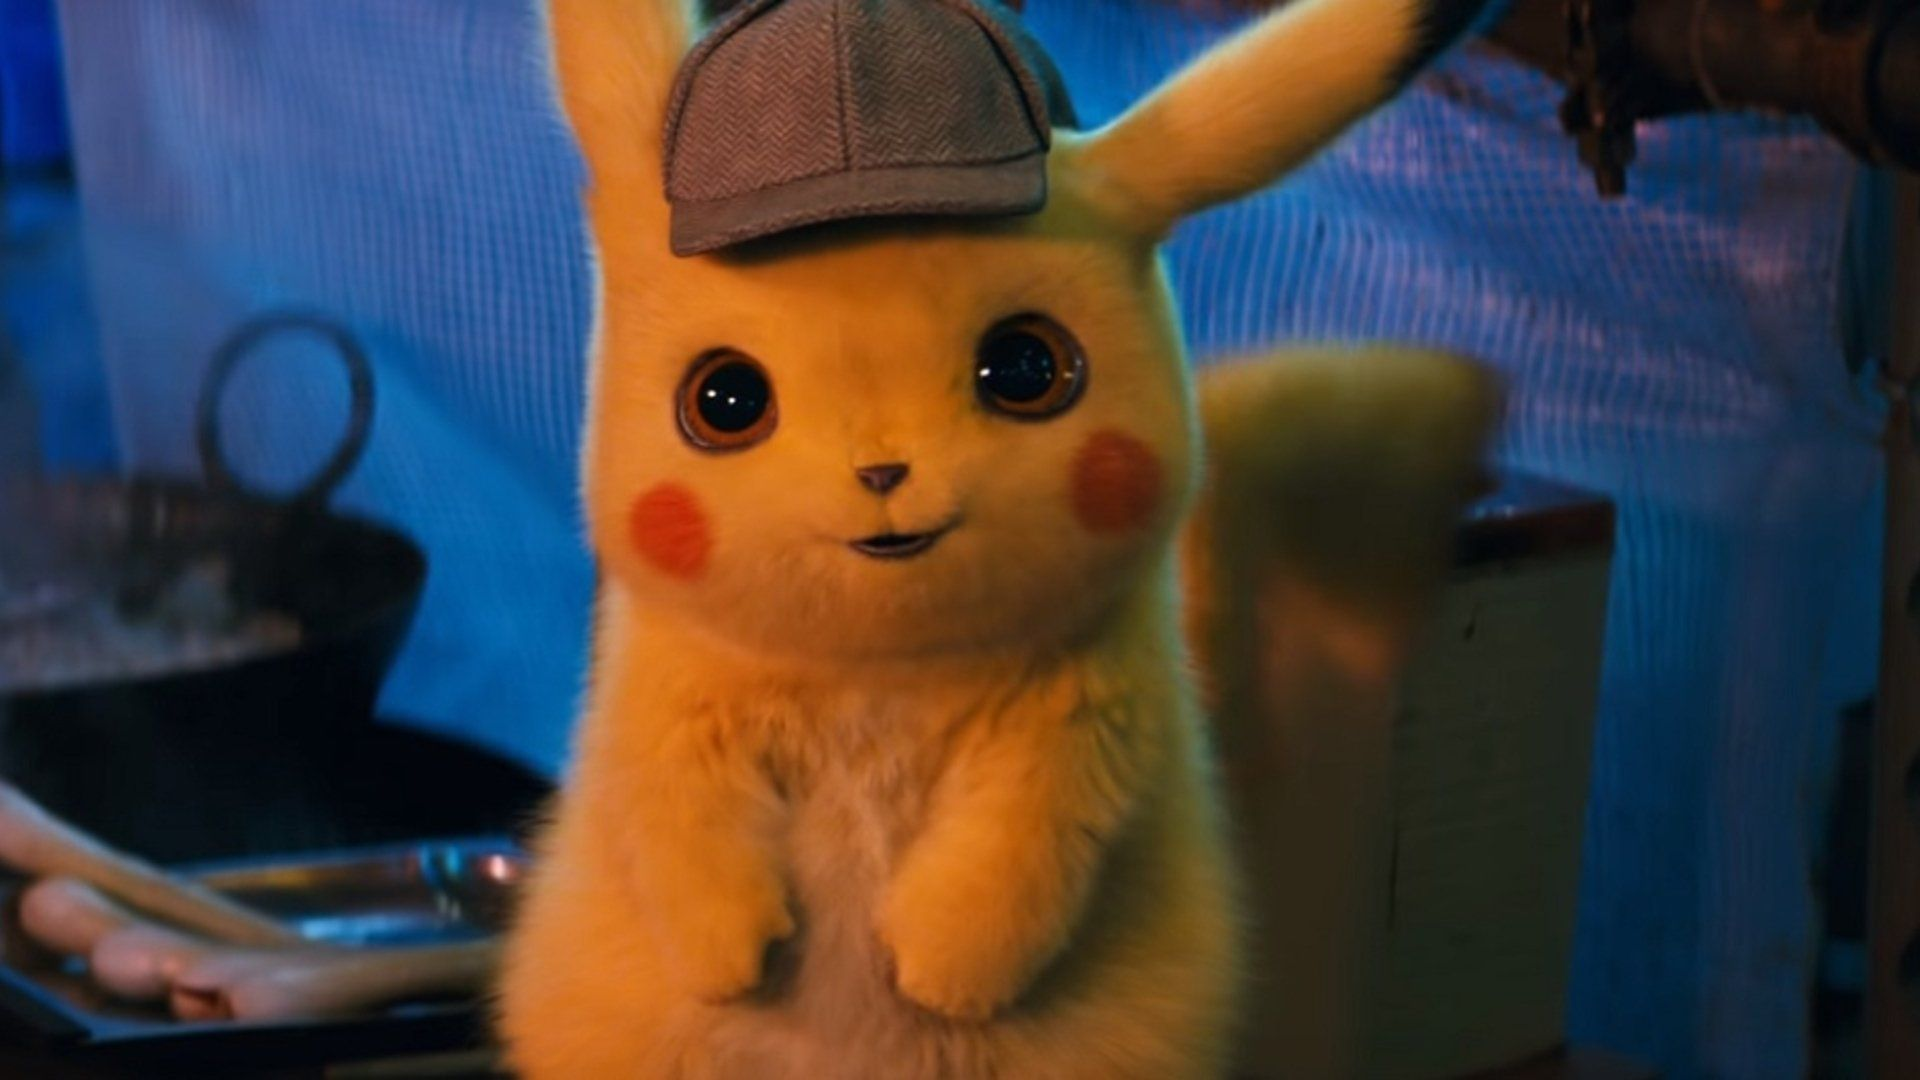 Detective Pikachu Wallpapers Top Free Detective Pikachu Backgrounds Wallpaperaccess